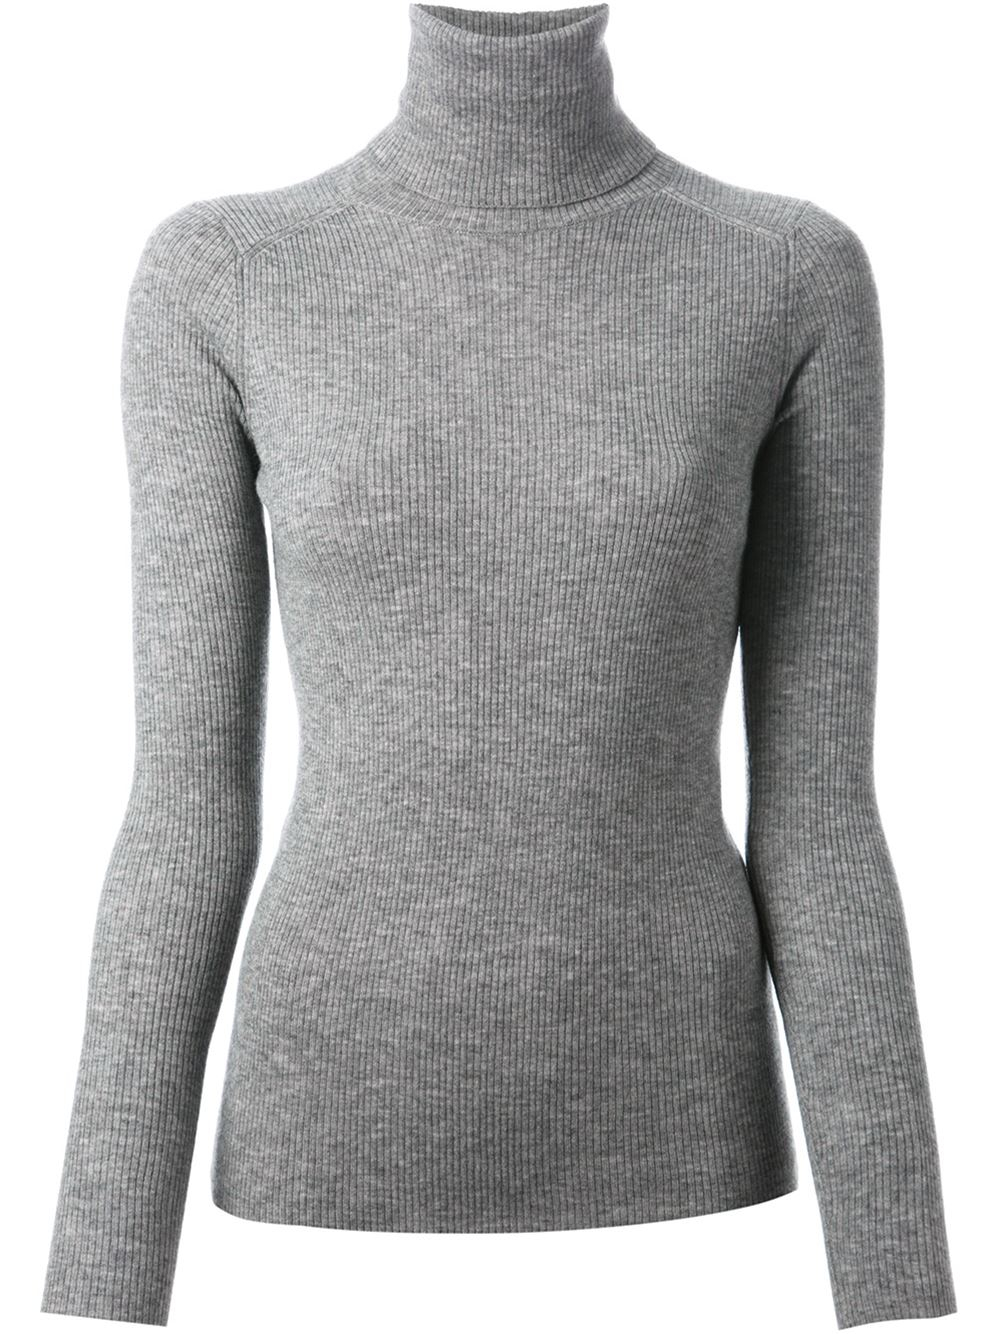 Vanessa bruno Ribbed Turtleneck Sweater in Gray | Lyst